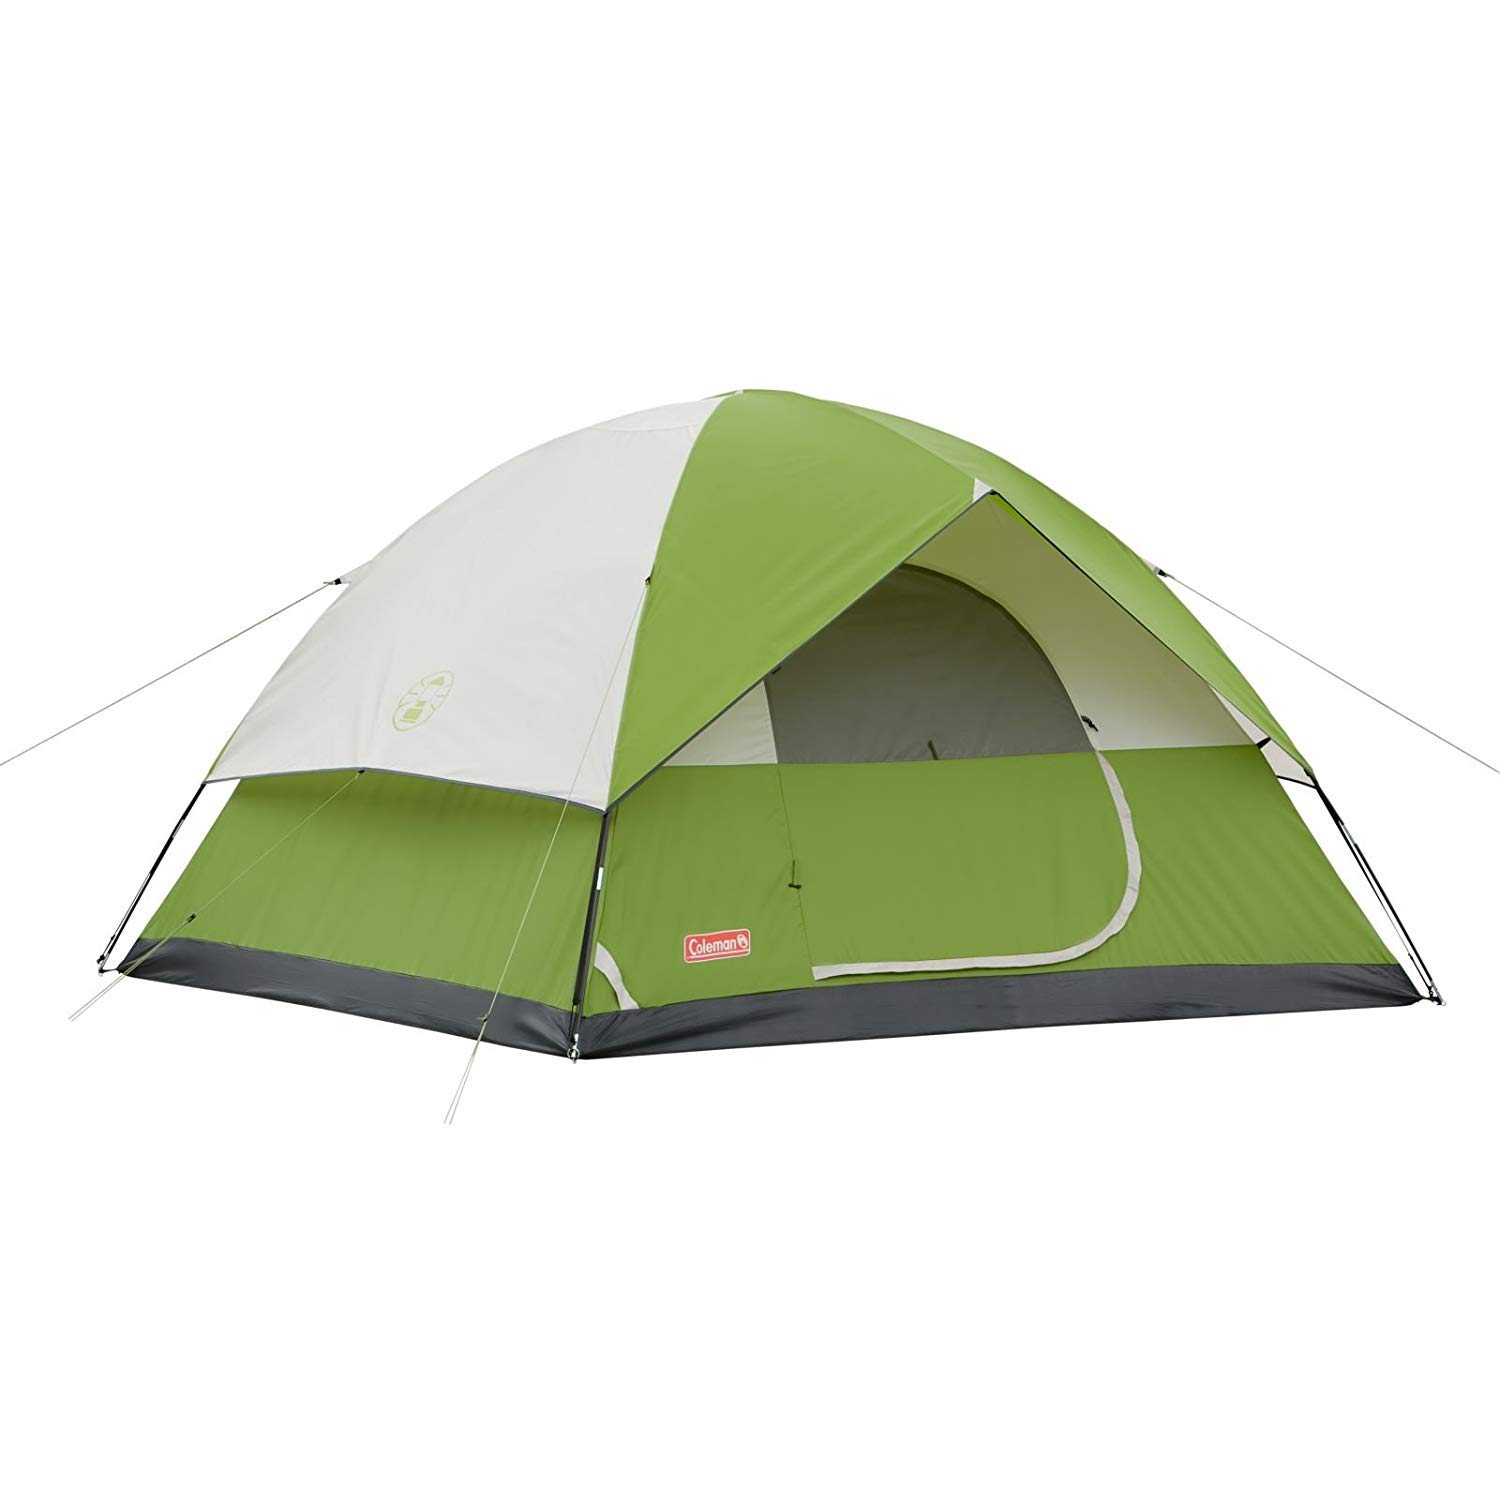 Coleman Picnic Camping Sun Dome Portable Camping Green Tents For 6